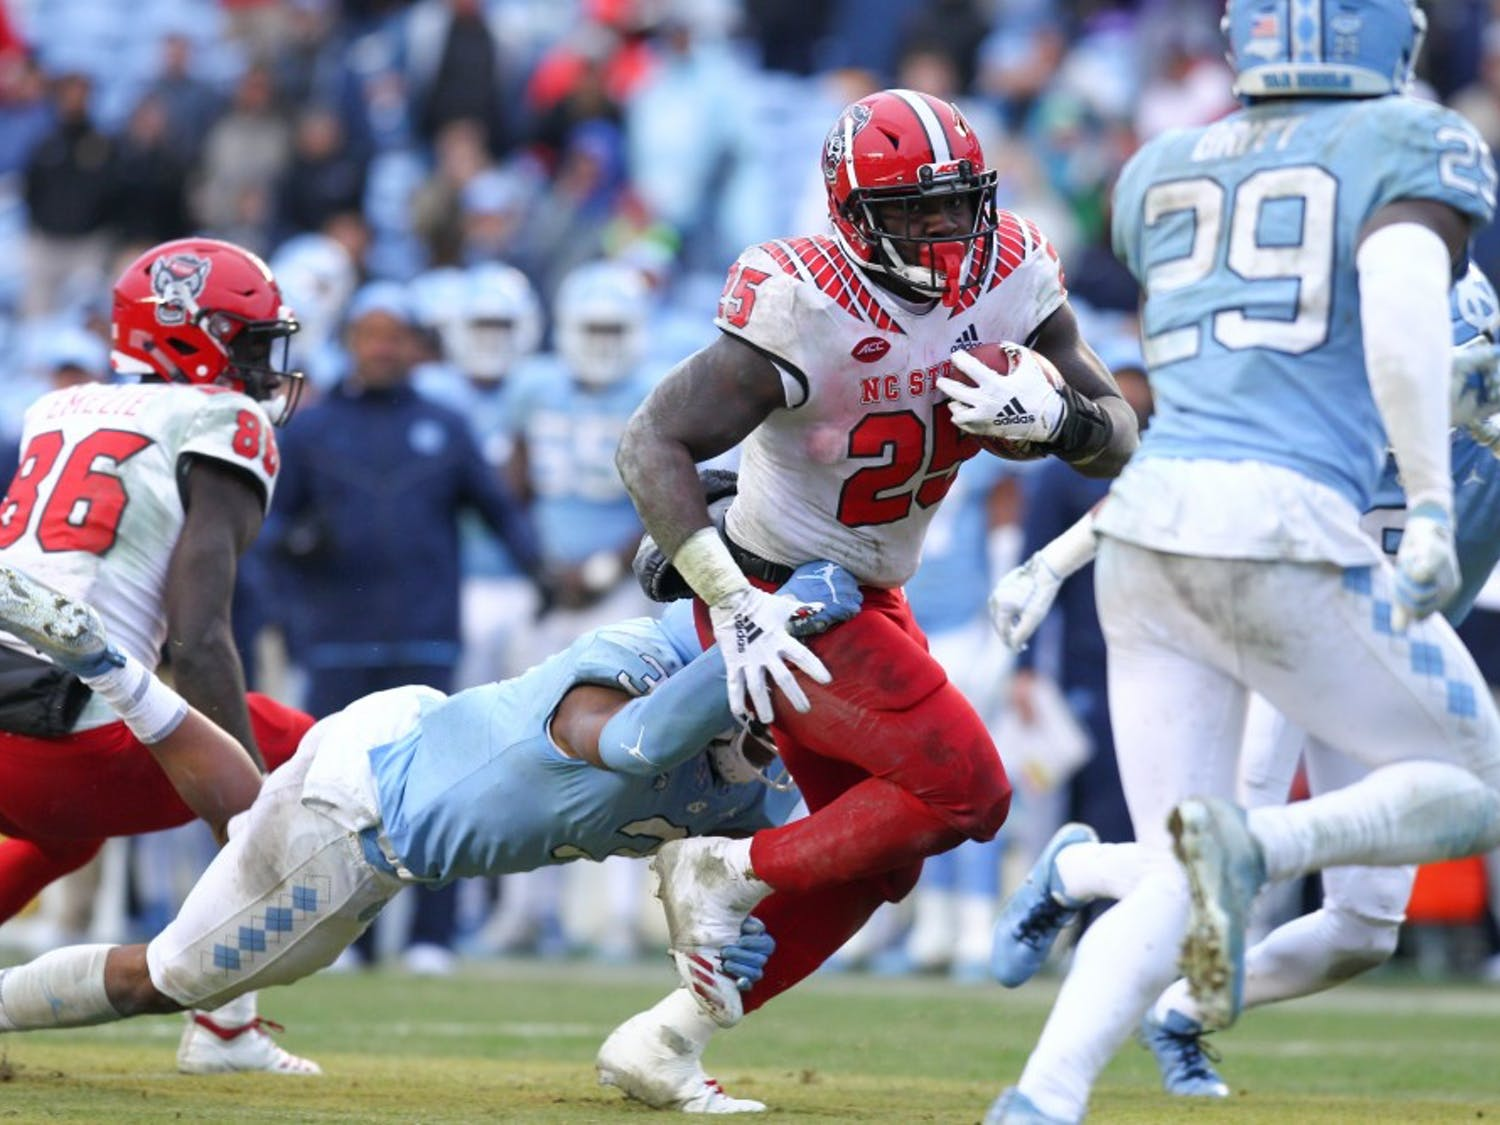 NC State running back Reggie Gallaspy II (25) tries to escape UNC players on Saturday, Nov. 24, 2018 in Kenan Memorial Stadium. NC State beat UNC 34-28 in overtime.